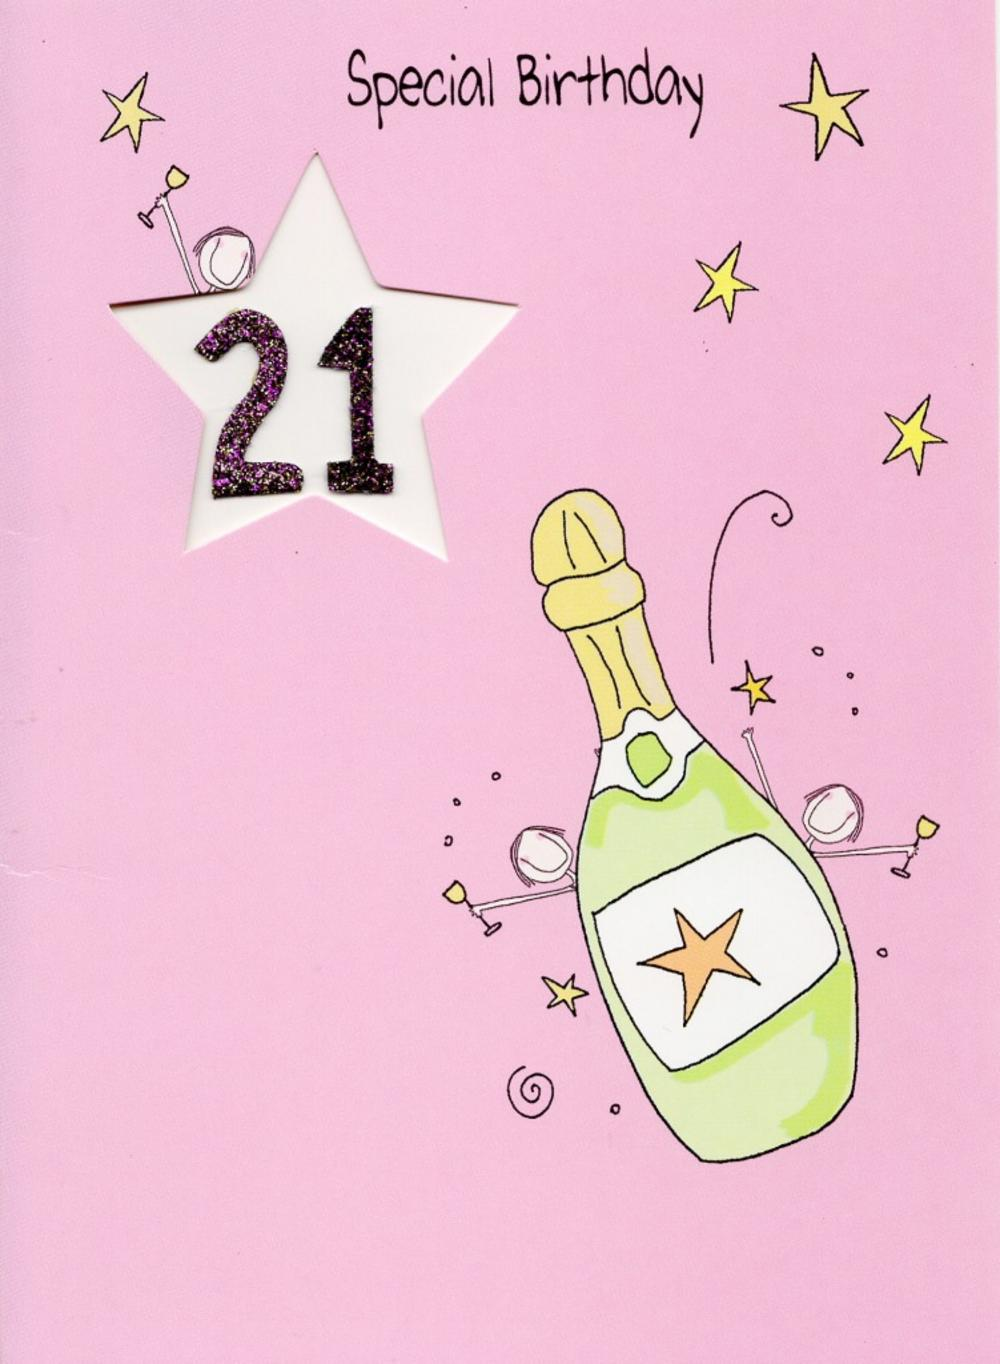 21st birthday greeting cards ; lrgscaleLV053a-21st-Birthday-Card